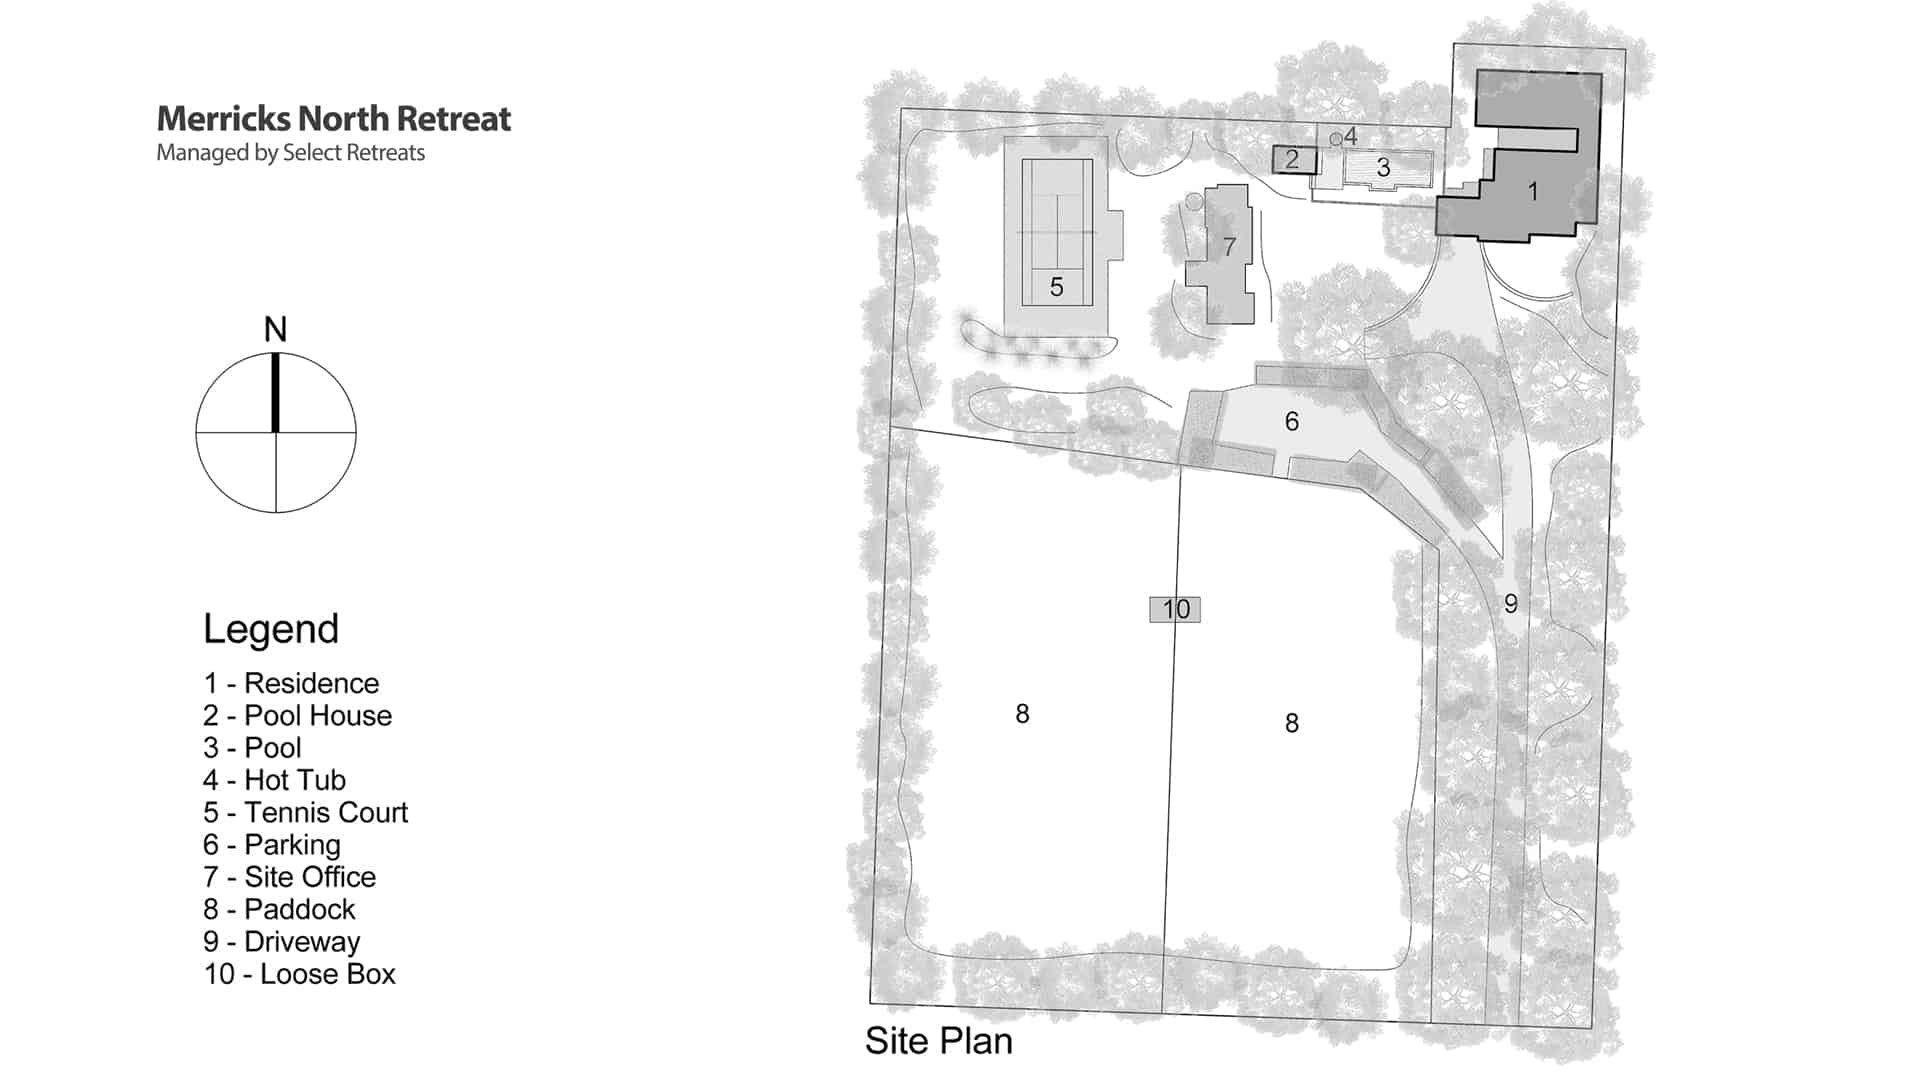 Merricks North Retreat Site Plan